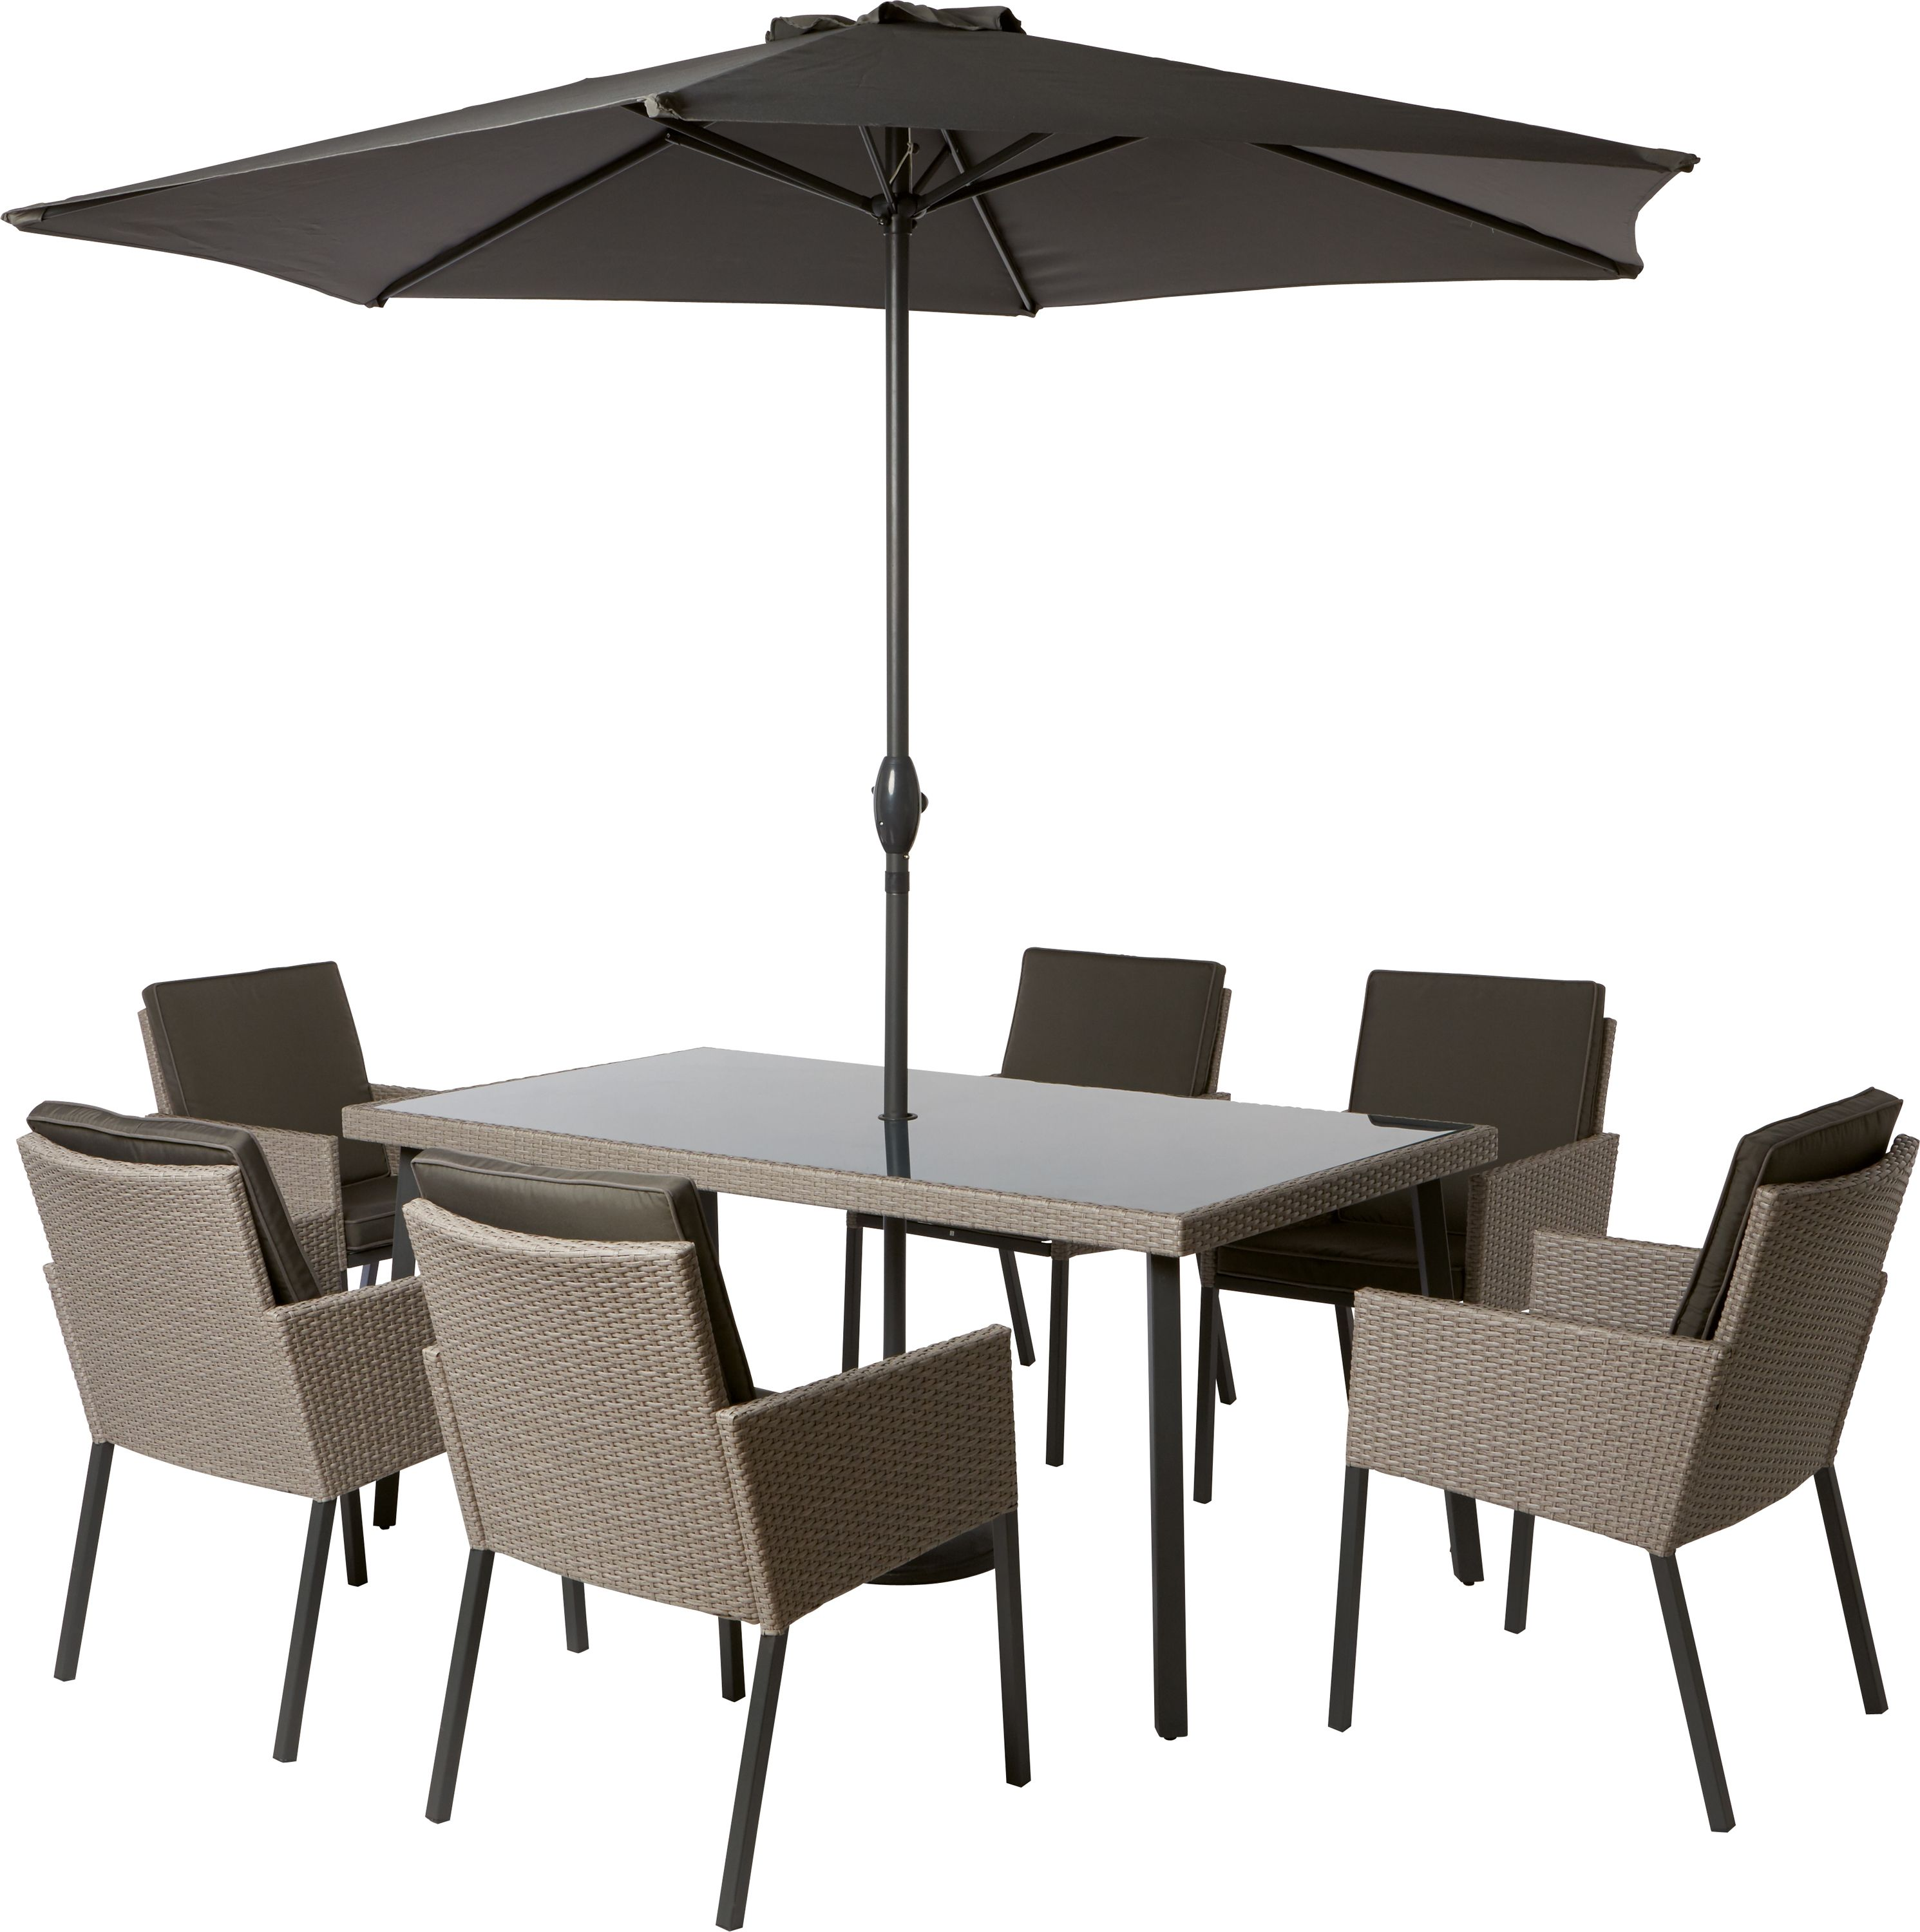 6 Seater Garden Furniture Palermo 6 seater rattan effect garden furniture set dinning set palermo 6 seater rattan effect garden furniture set workwithnaturefo